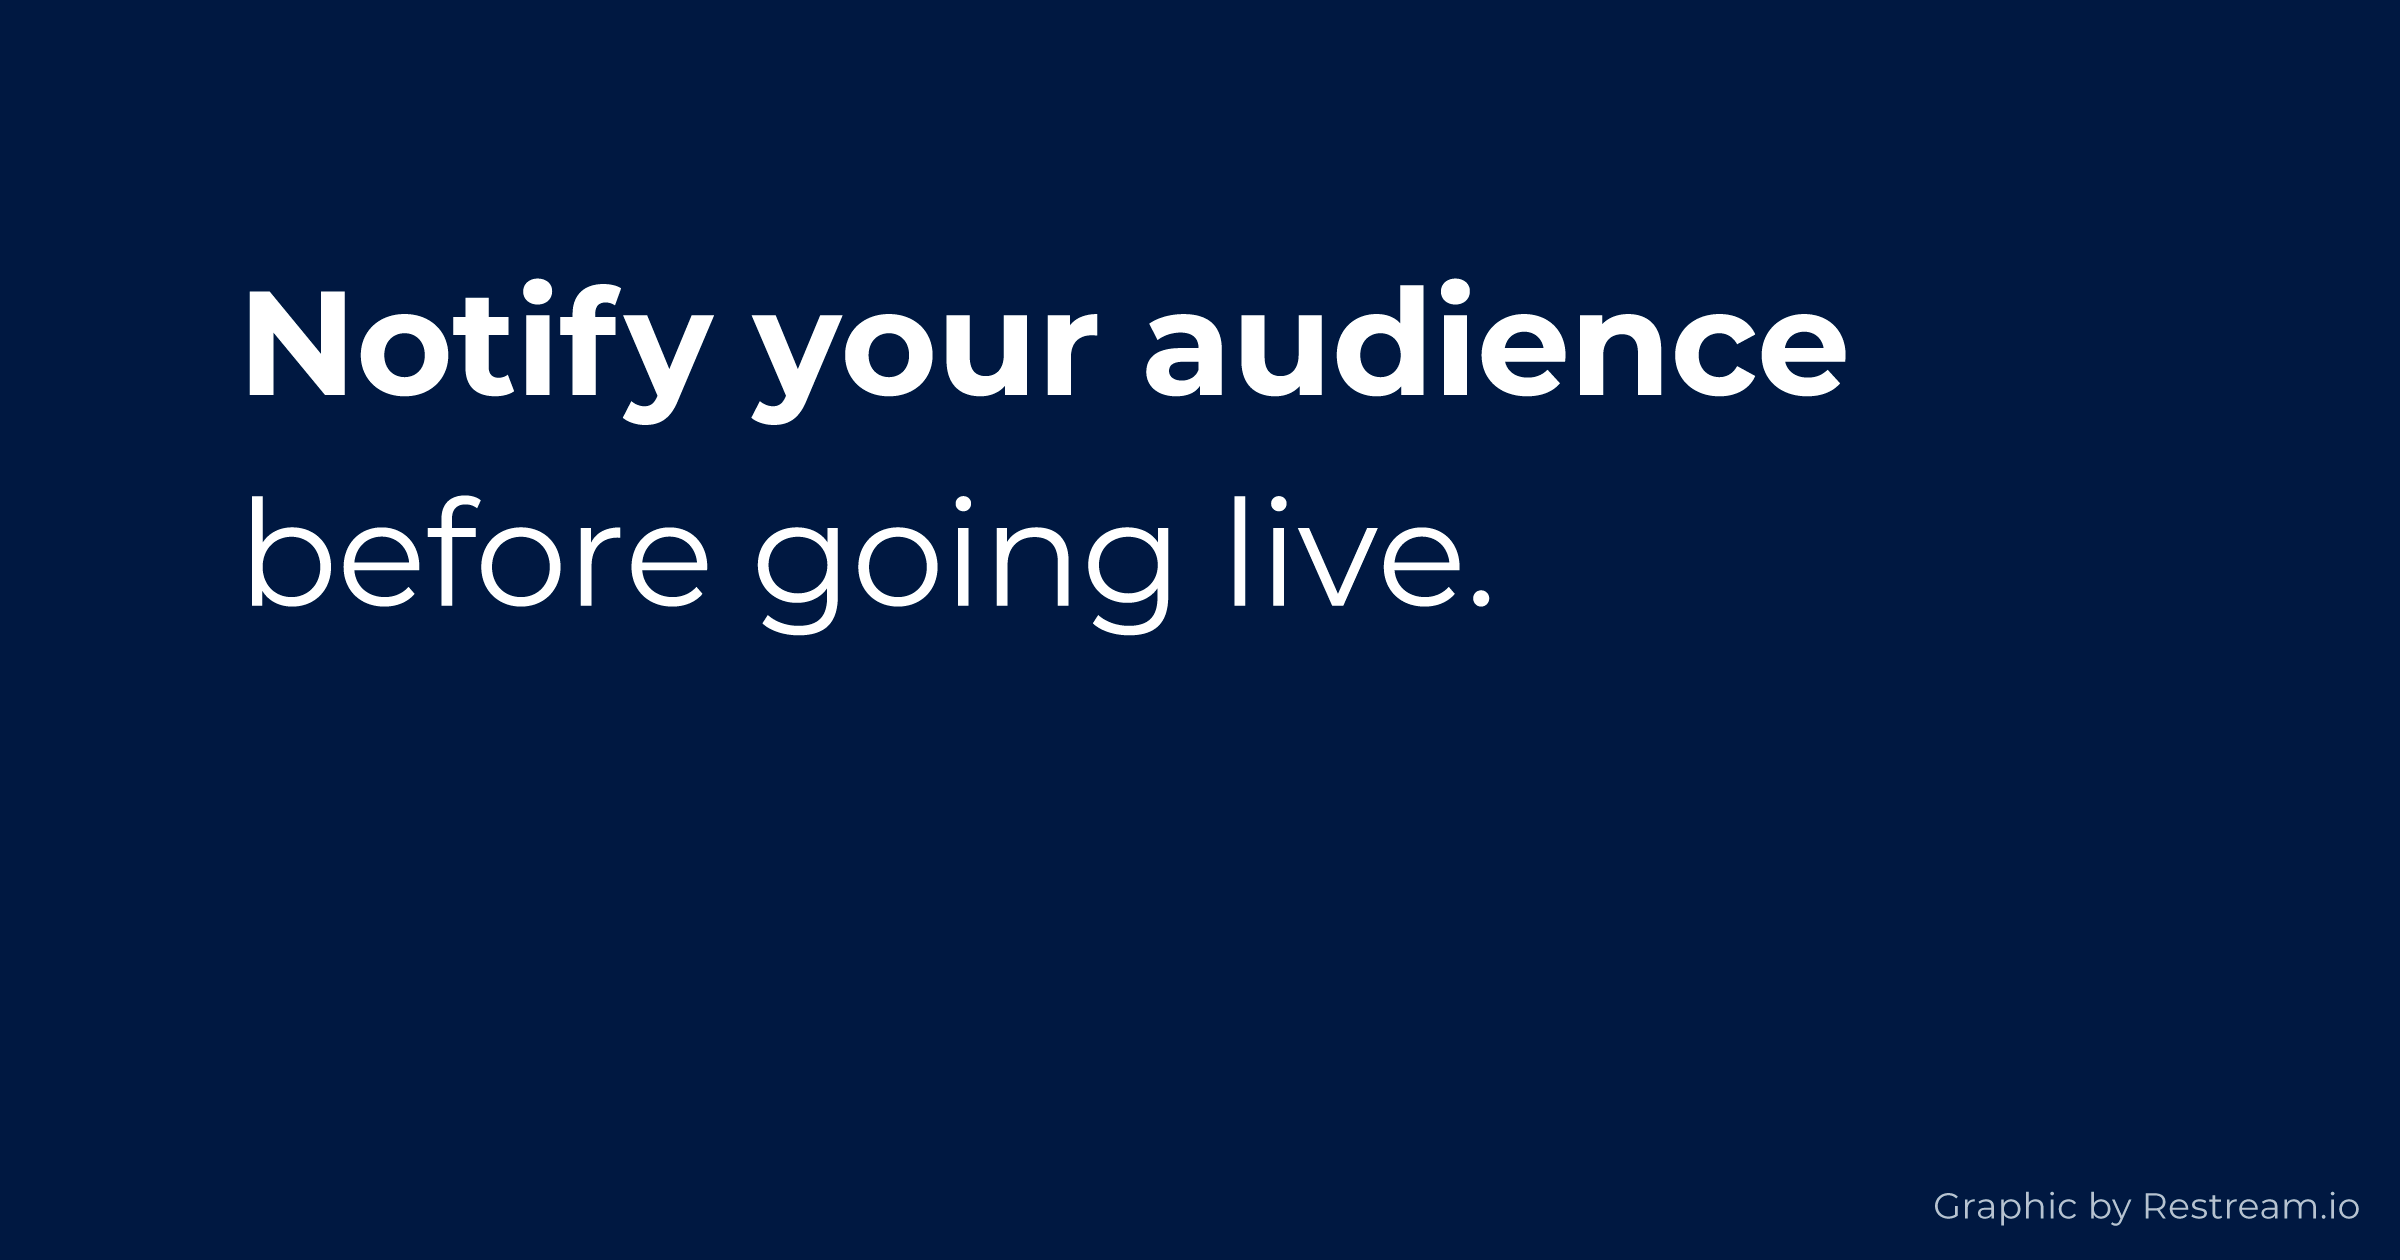 Notify your audience before going live